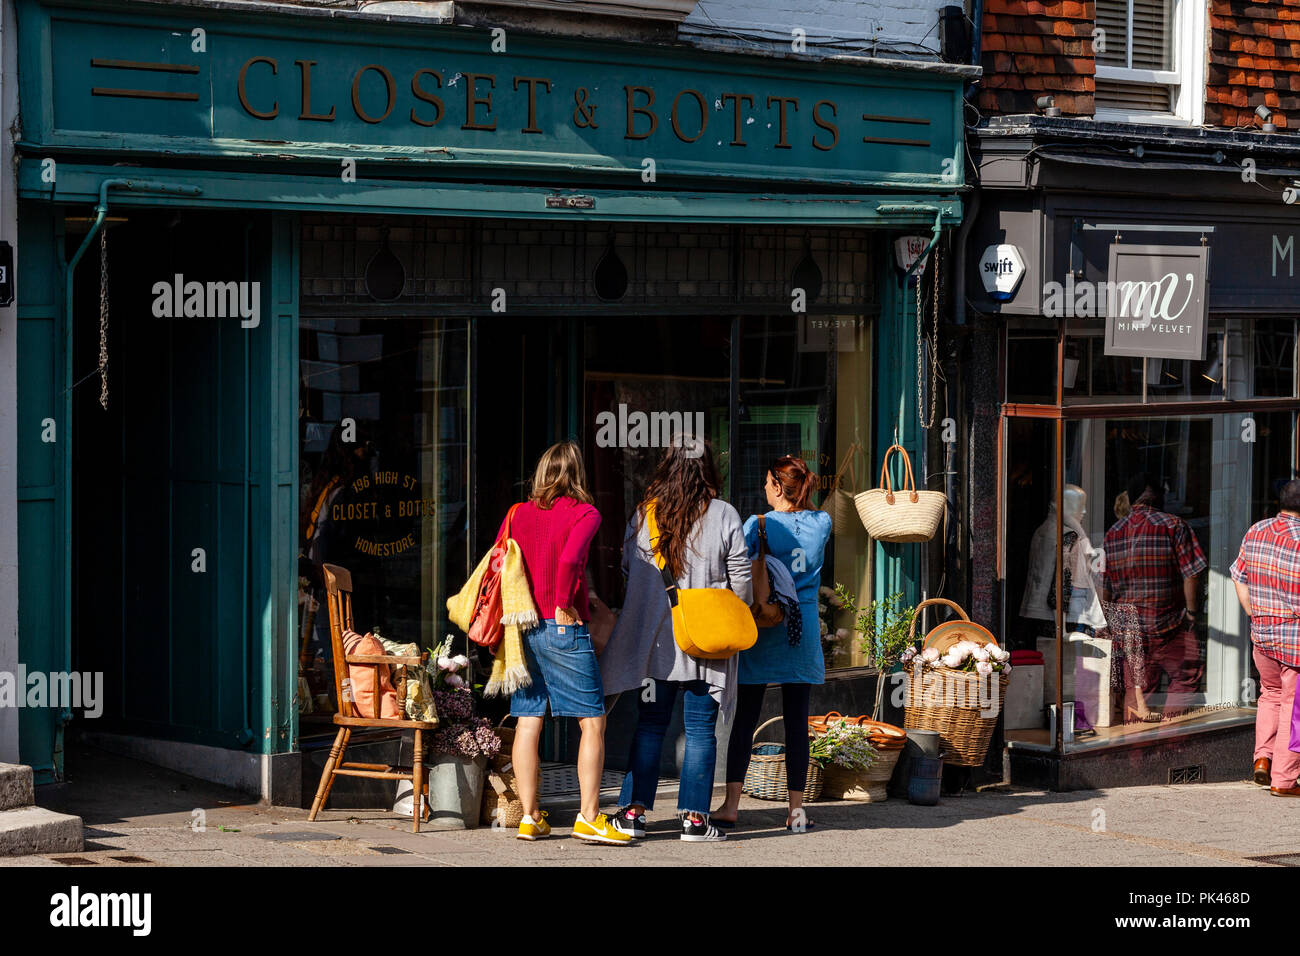 A Group Of Women Shopping At Closet and Botts Homeware Store, High Street, Lewes, East Sussex, UK - Stock Image